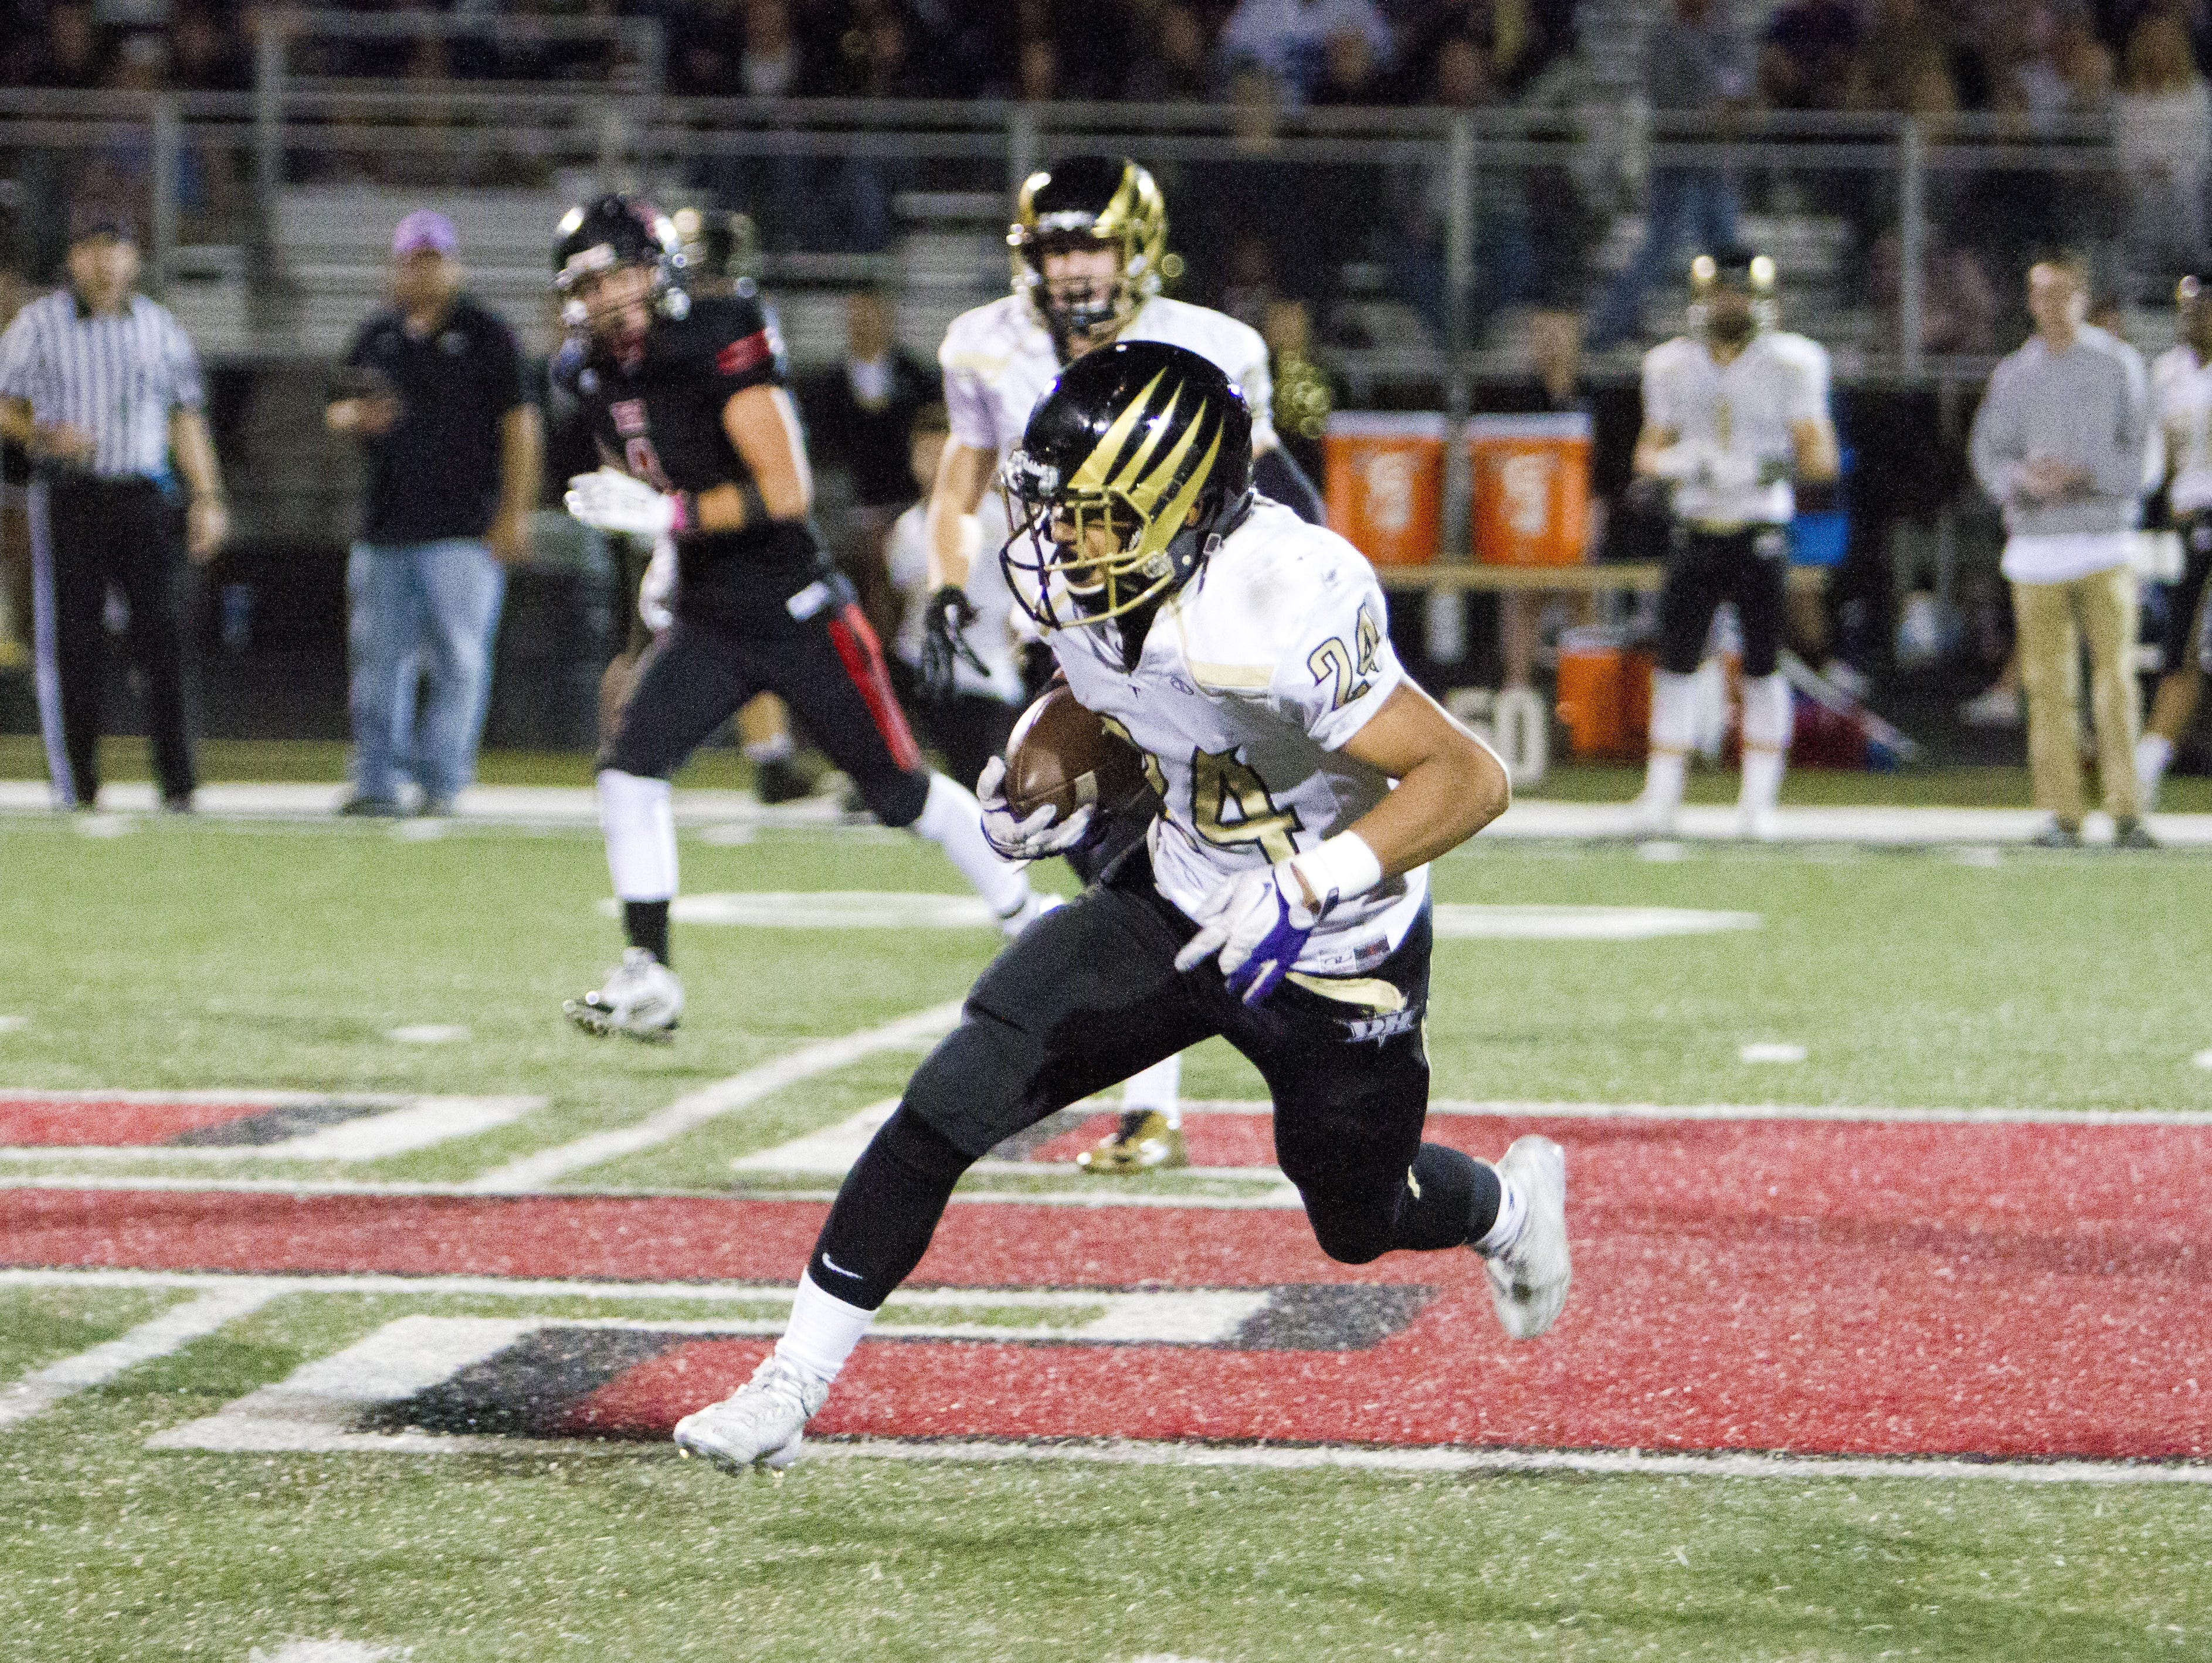 Desert Hills' Nephi Sewell scores a touchdown against Hurricane Friday, Oct. 24, 2014. Desert Hills looks to rebound after a disappointing season last year and is one of the favorites to win the state 3AA title.